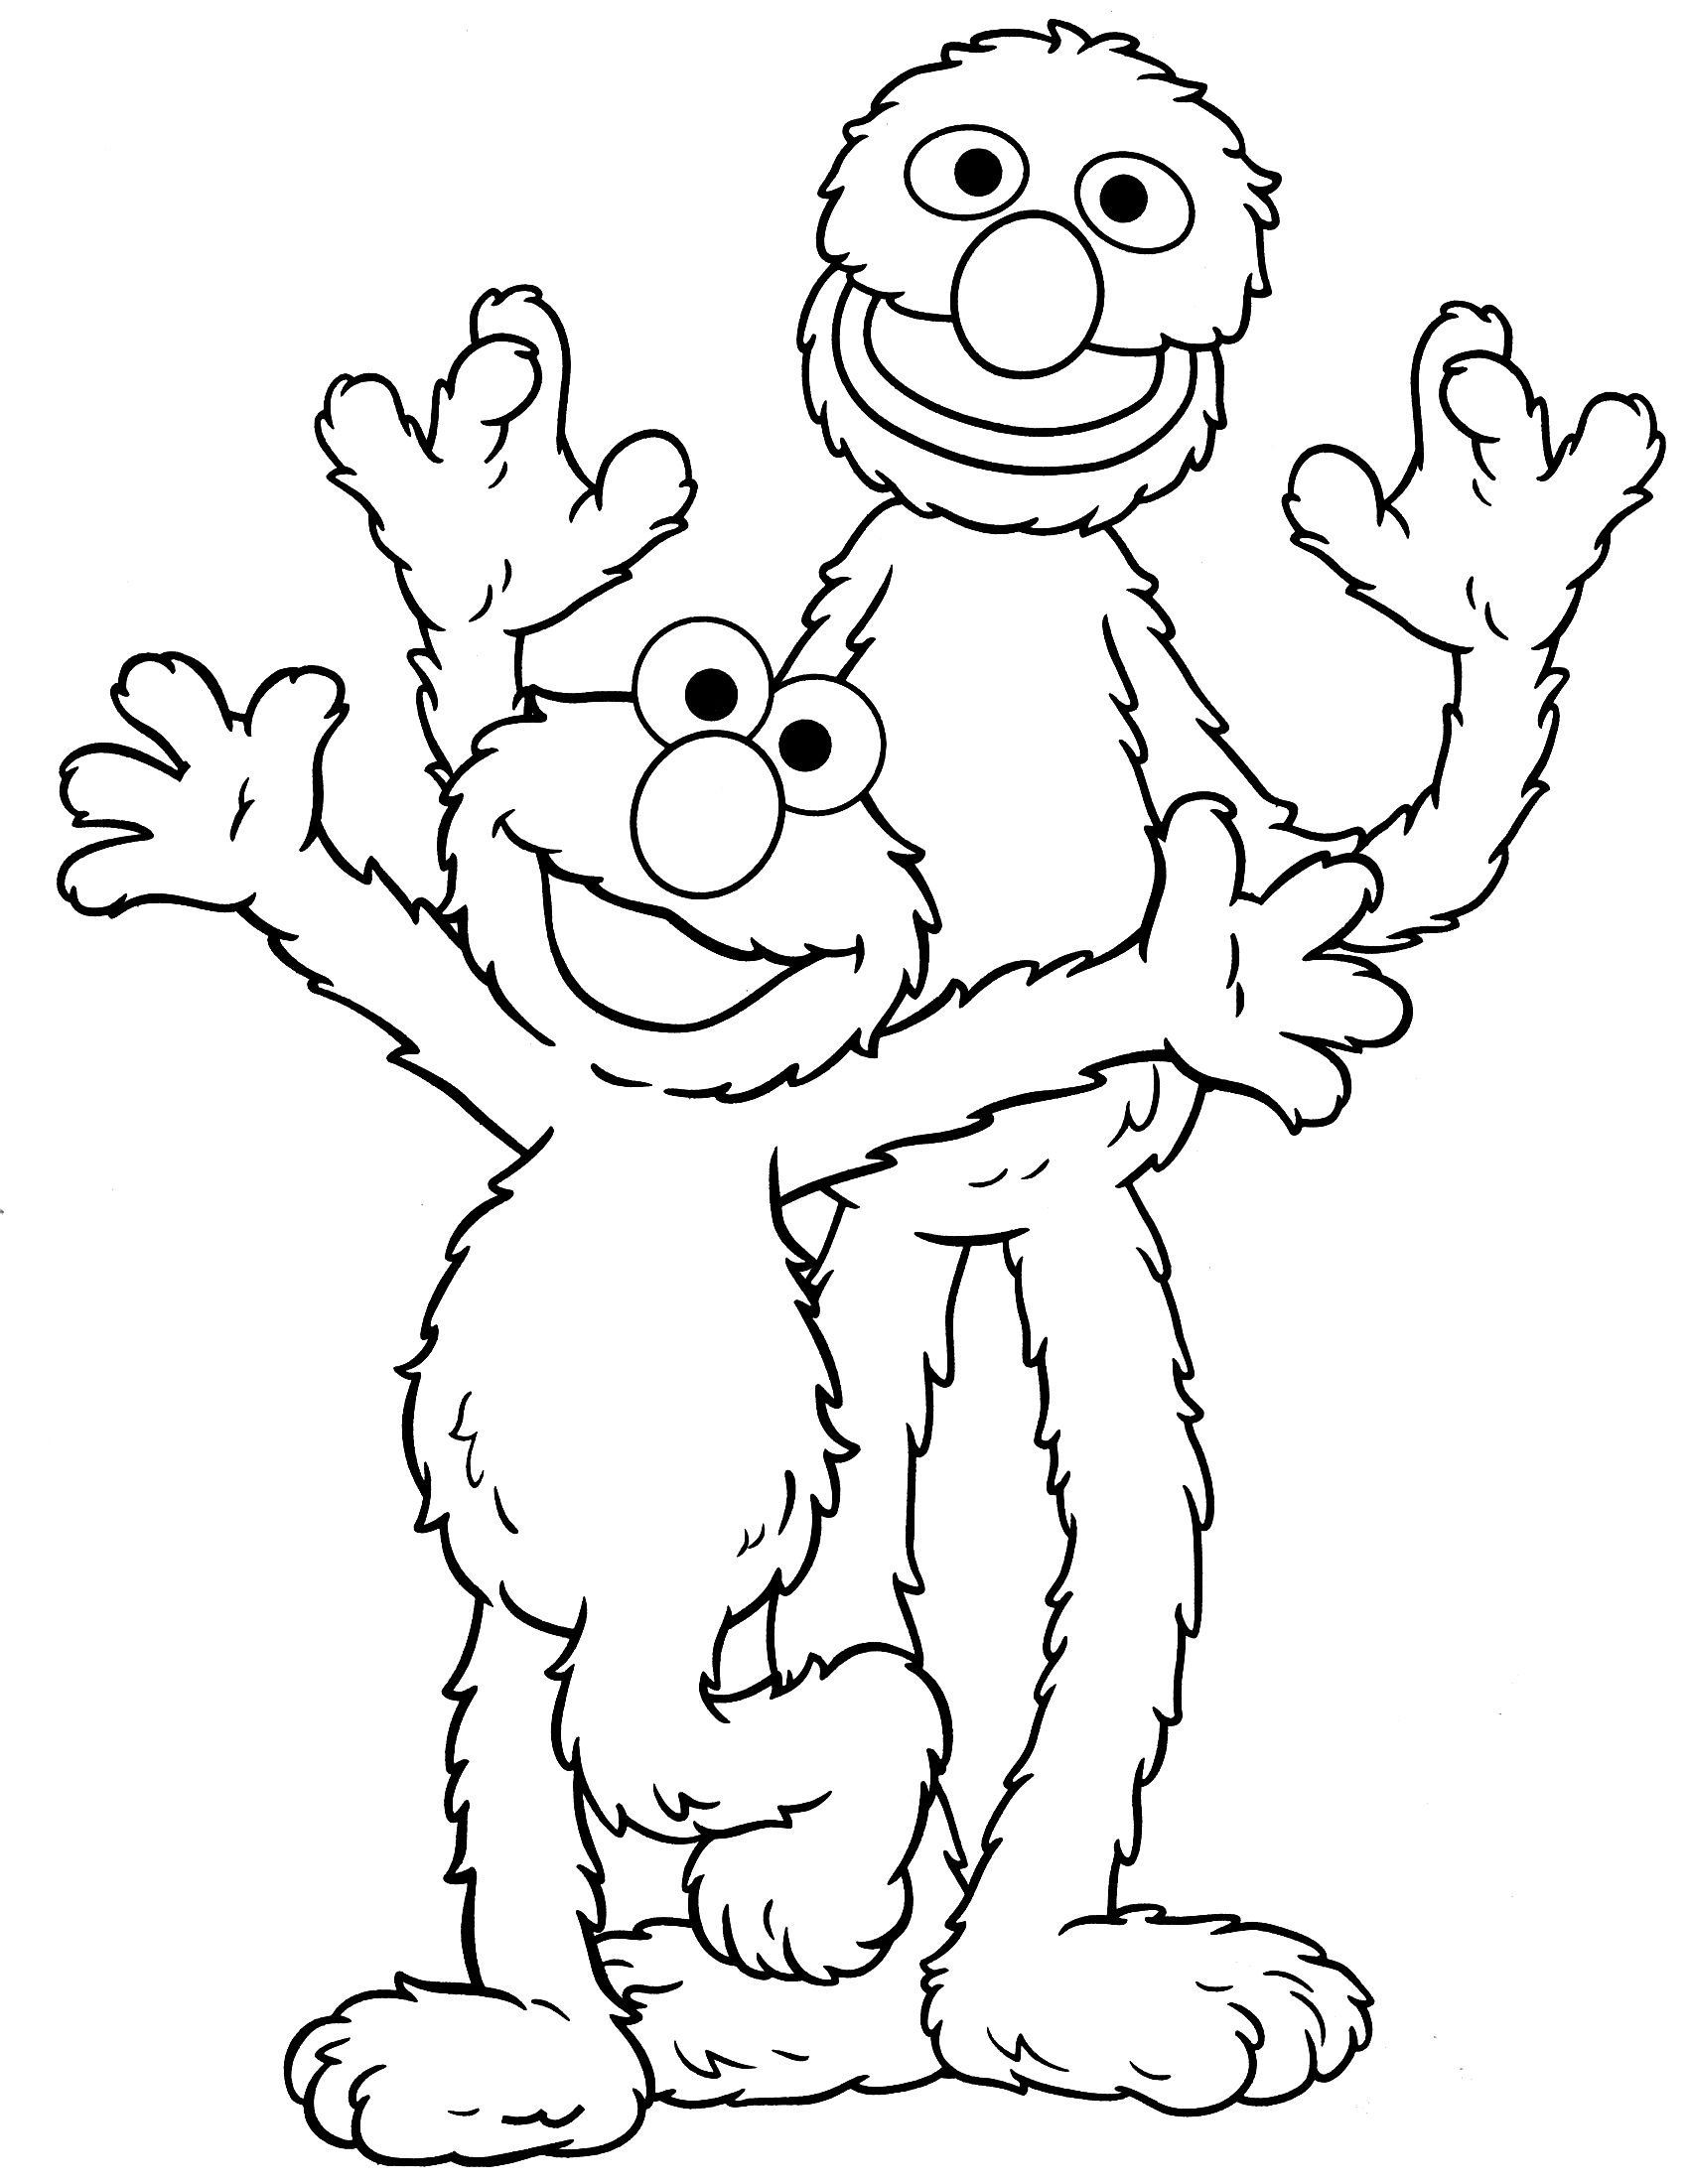 sesame street character coloring pages - photo#14